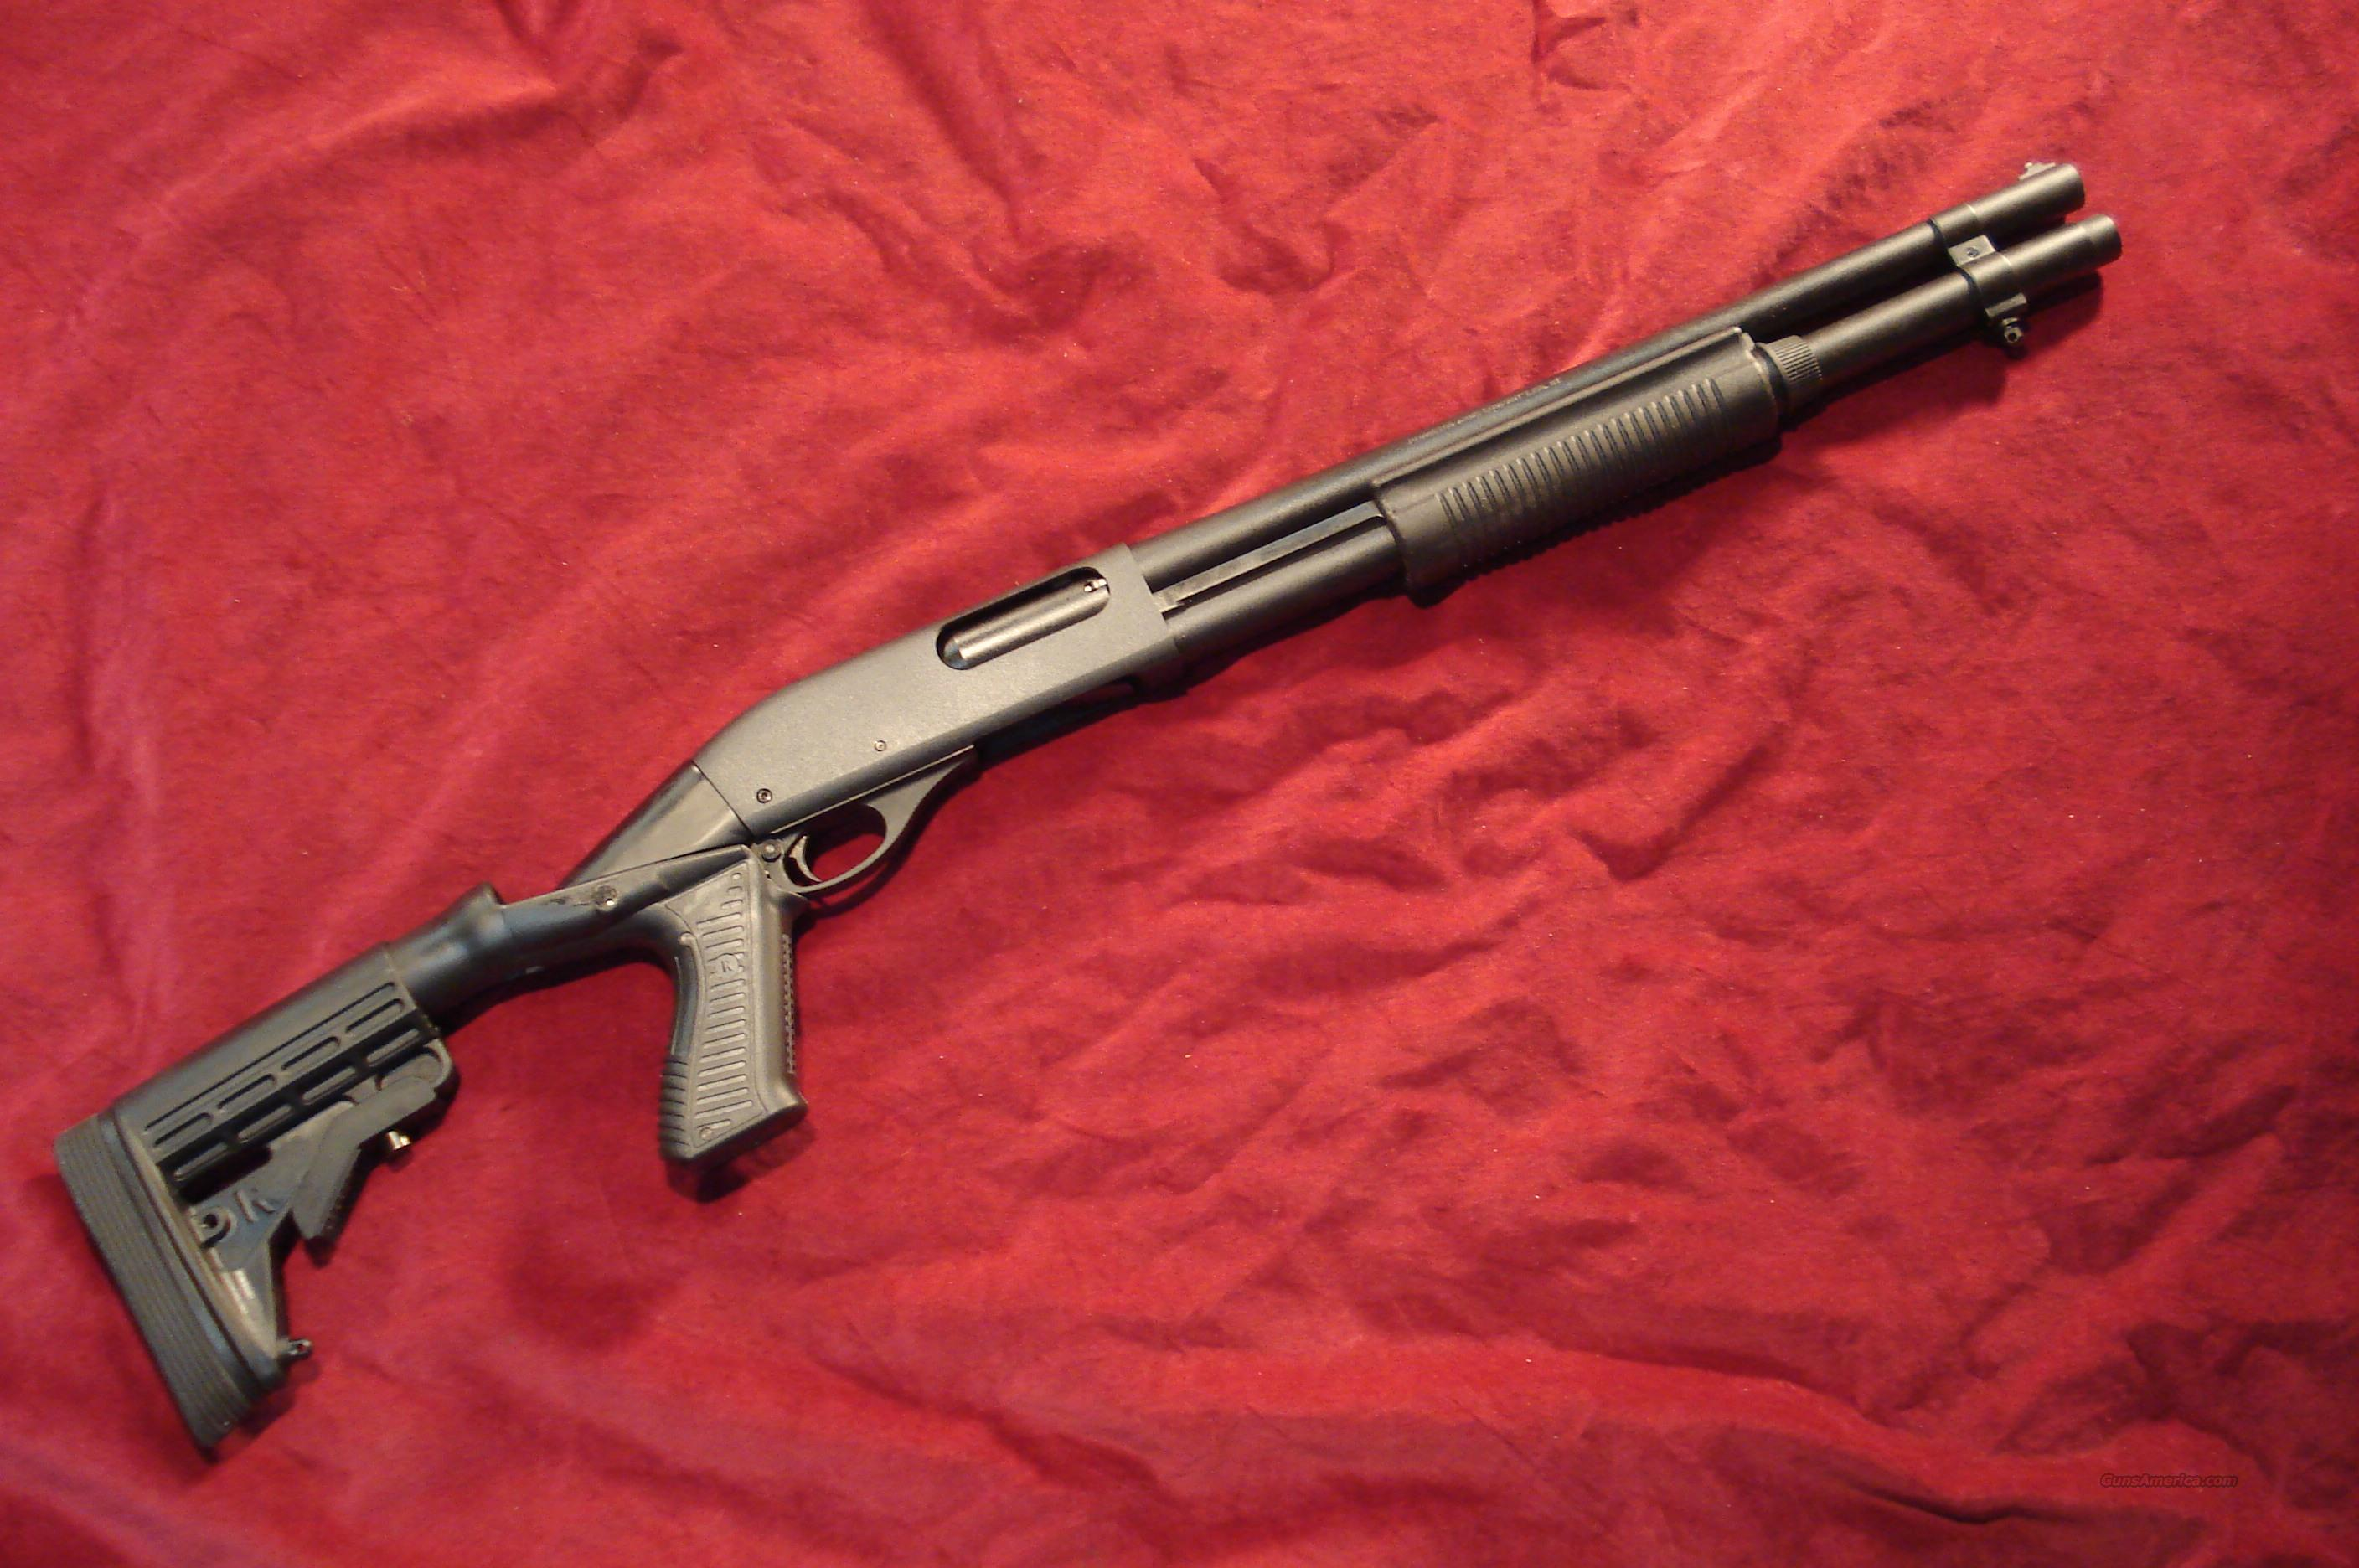 REMINGTON 870 12G TACTICAL MAGNUM W/ SPECIAL OPS (KNOXX COP) COLLAPSABLE STOCK NEW IN THE BOX  Guns > Shotguns > Remington Shotguns  > Pump > Tactical